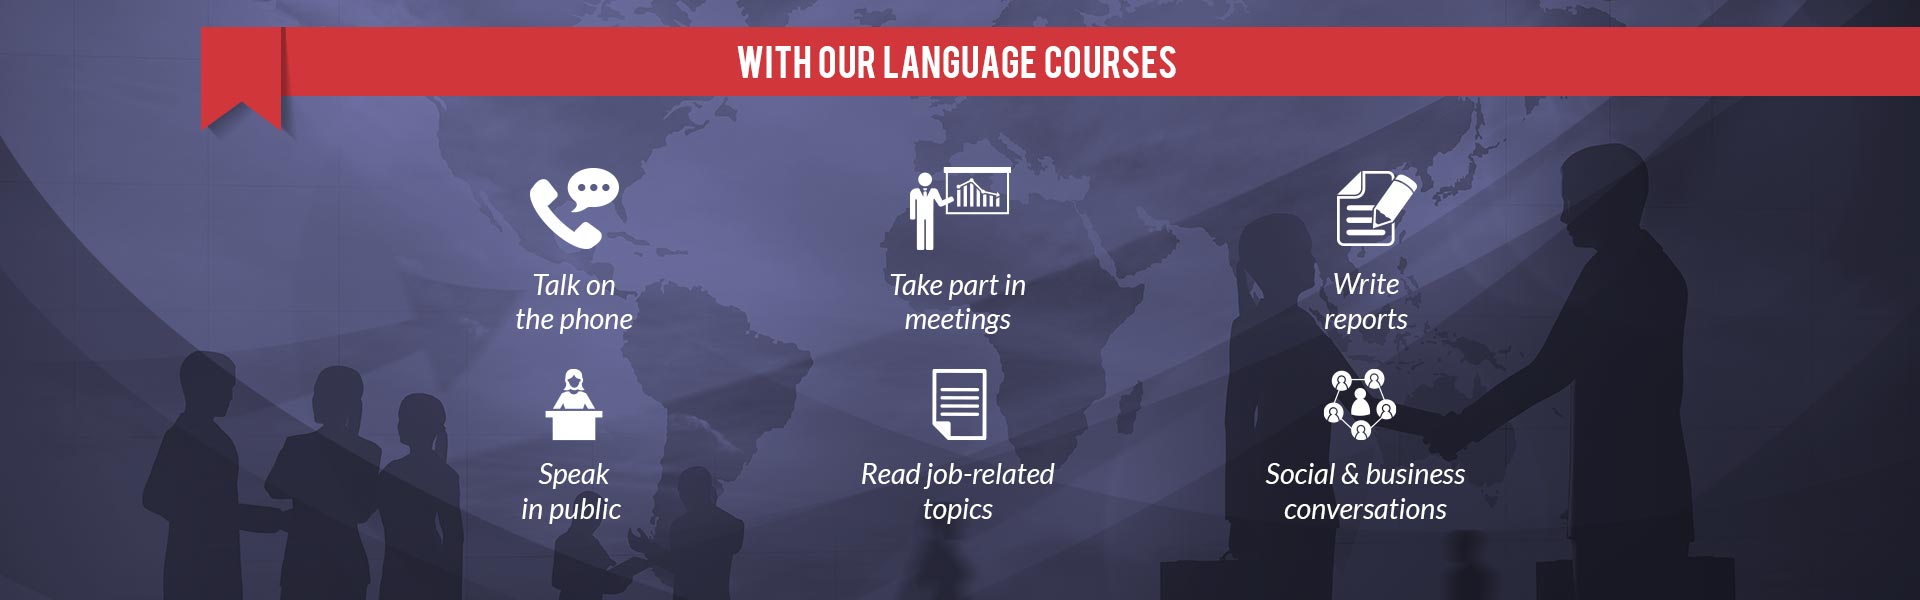 With our Language Courses